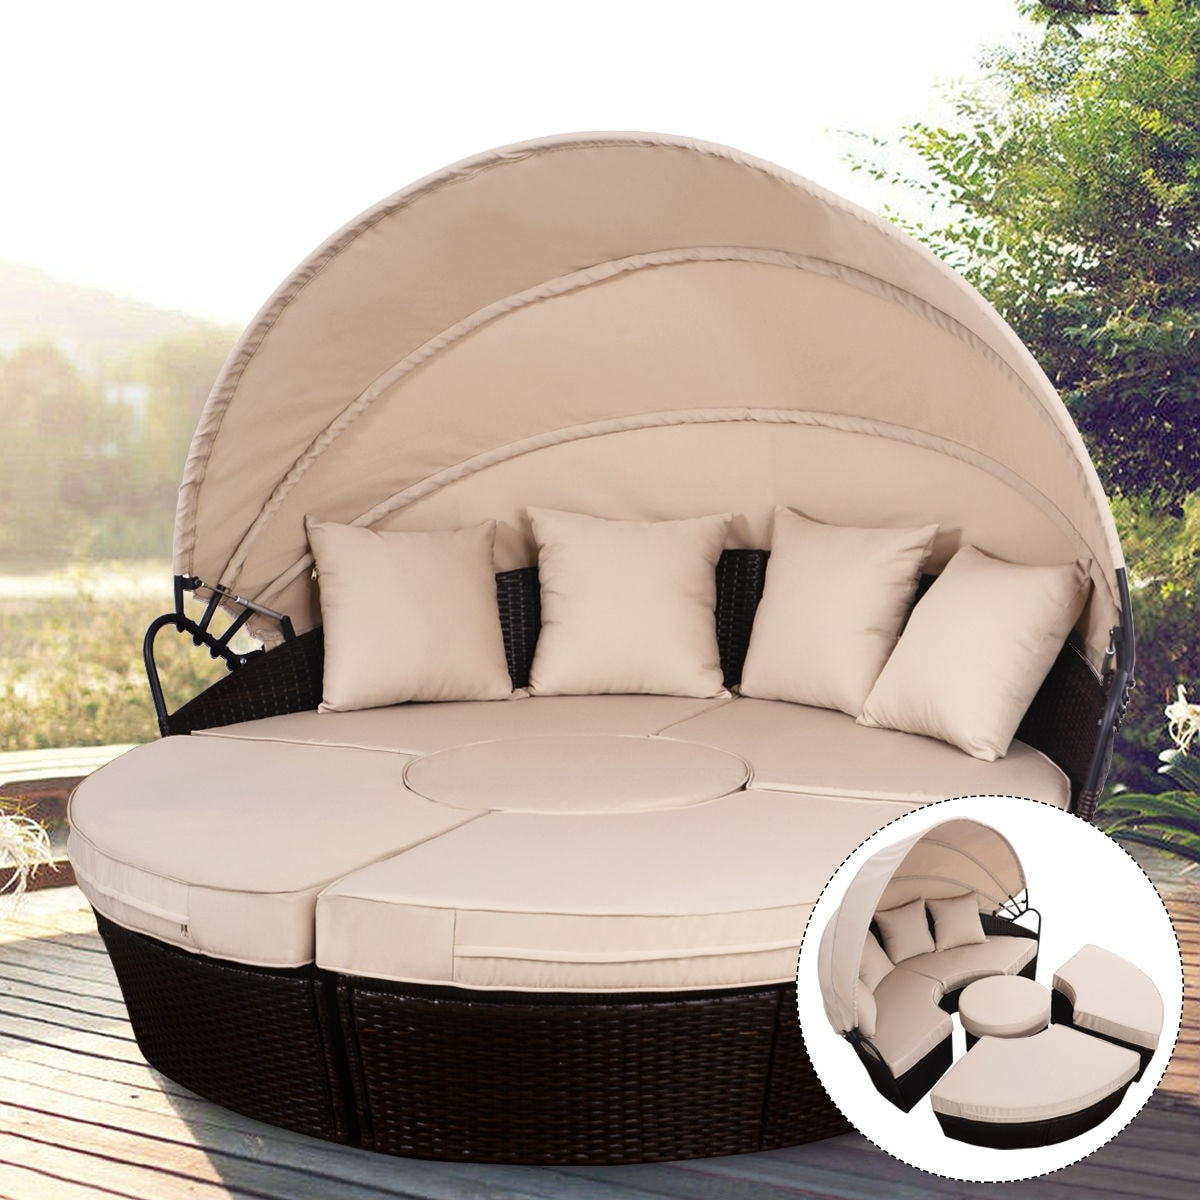 Outdoor Sofa Halbrund Lounge Sofa Outdoor Rund